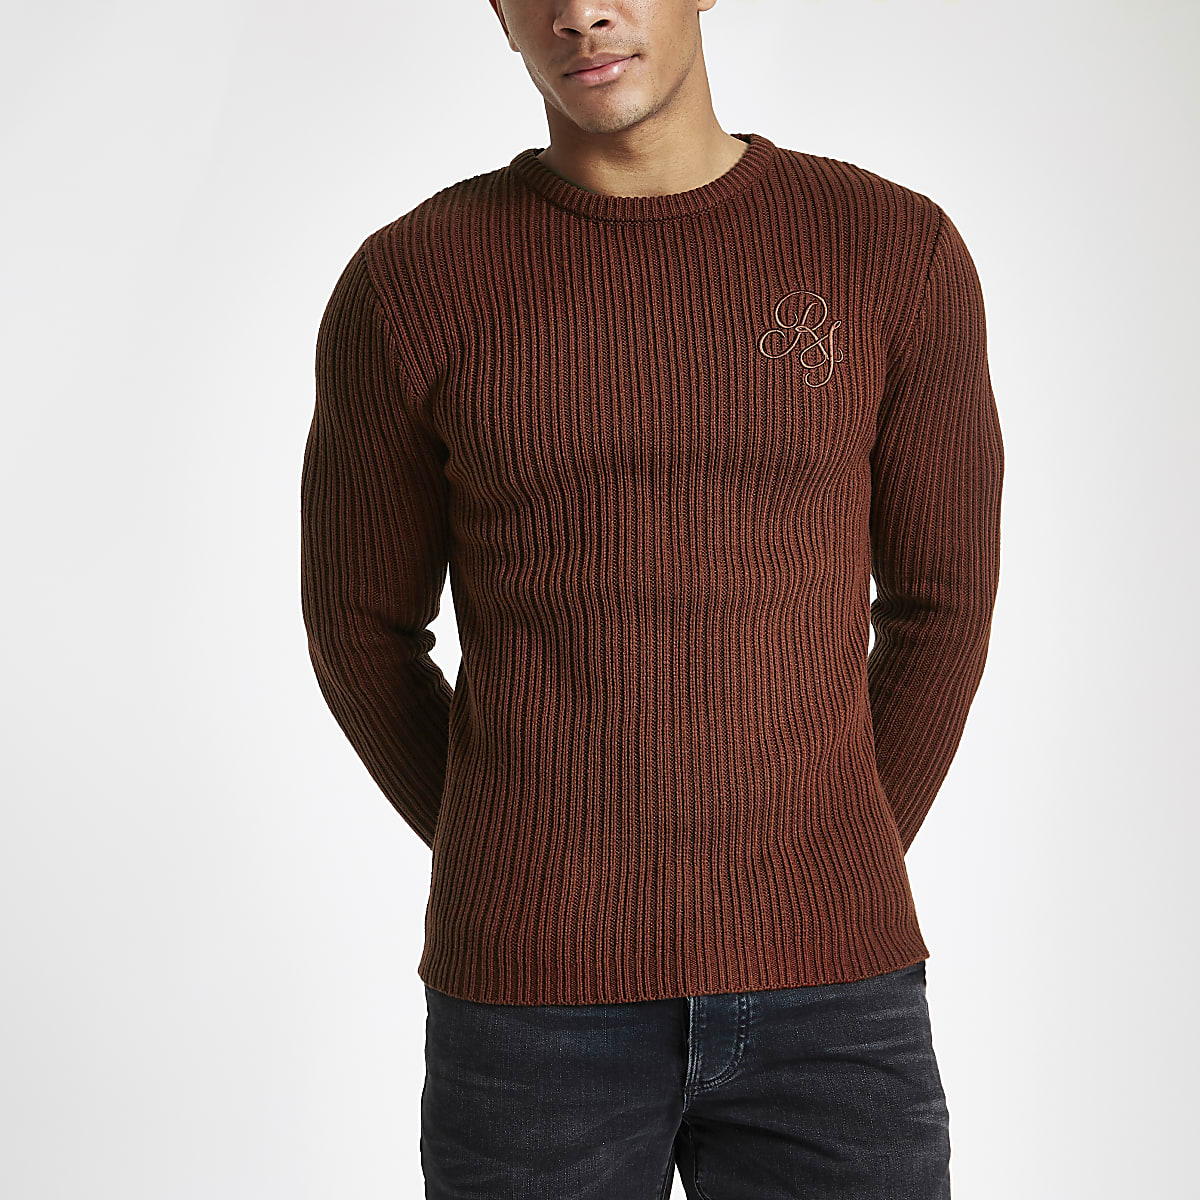 cb3badaa2 Rust muscle fit rib crew neck jumper - Jumpers - Jumpers & Cardigans - men